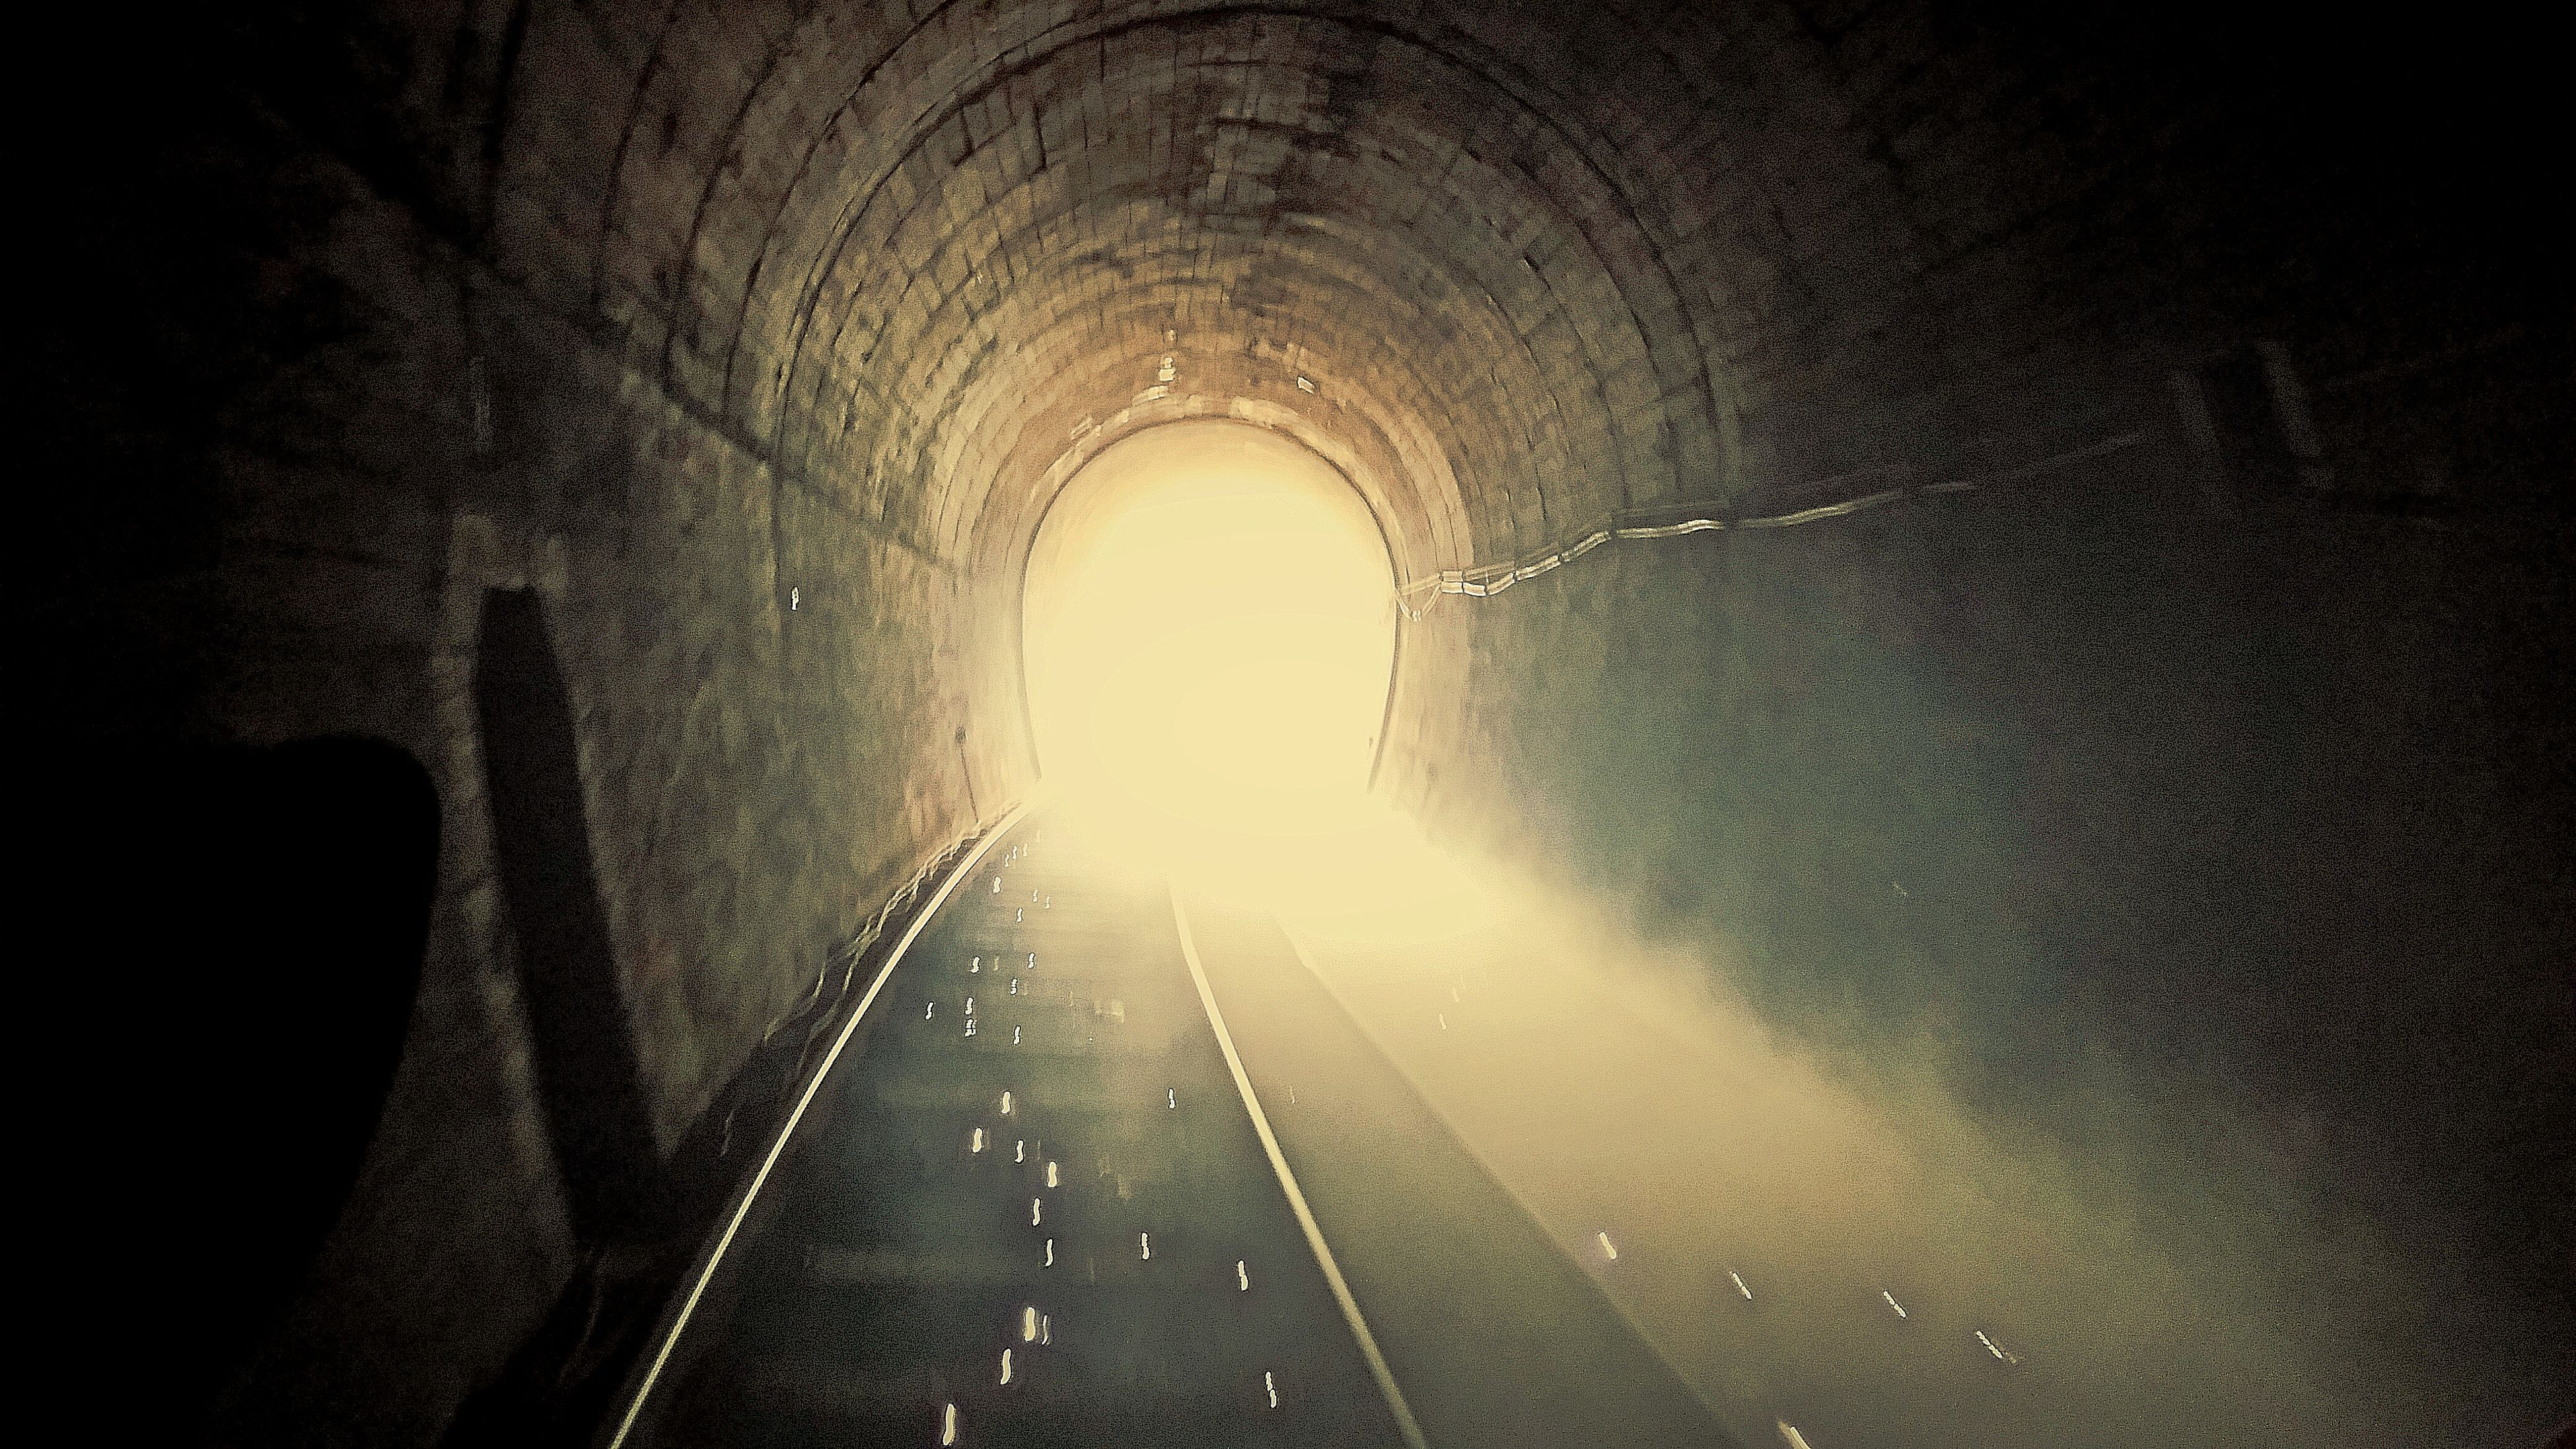 indoors, tunnel, the way forward, arch, diminishing perspective, vanishing point, illuminated, built structure, architecture, transportation, dark, light at the end of the tunnel, wall - building feature, lighting equipment, ceiling, light - natural phenomenon, no people, sunlight, silhouette, wall